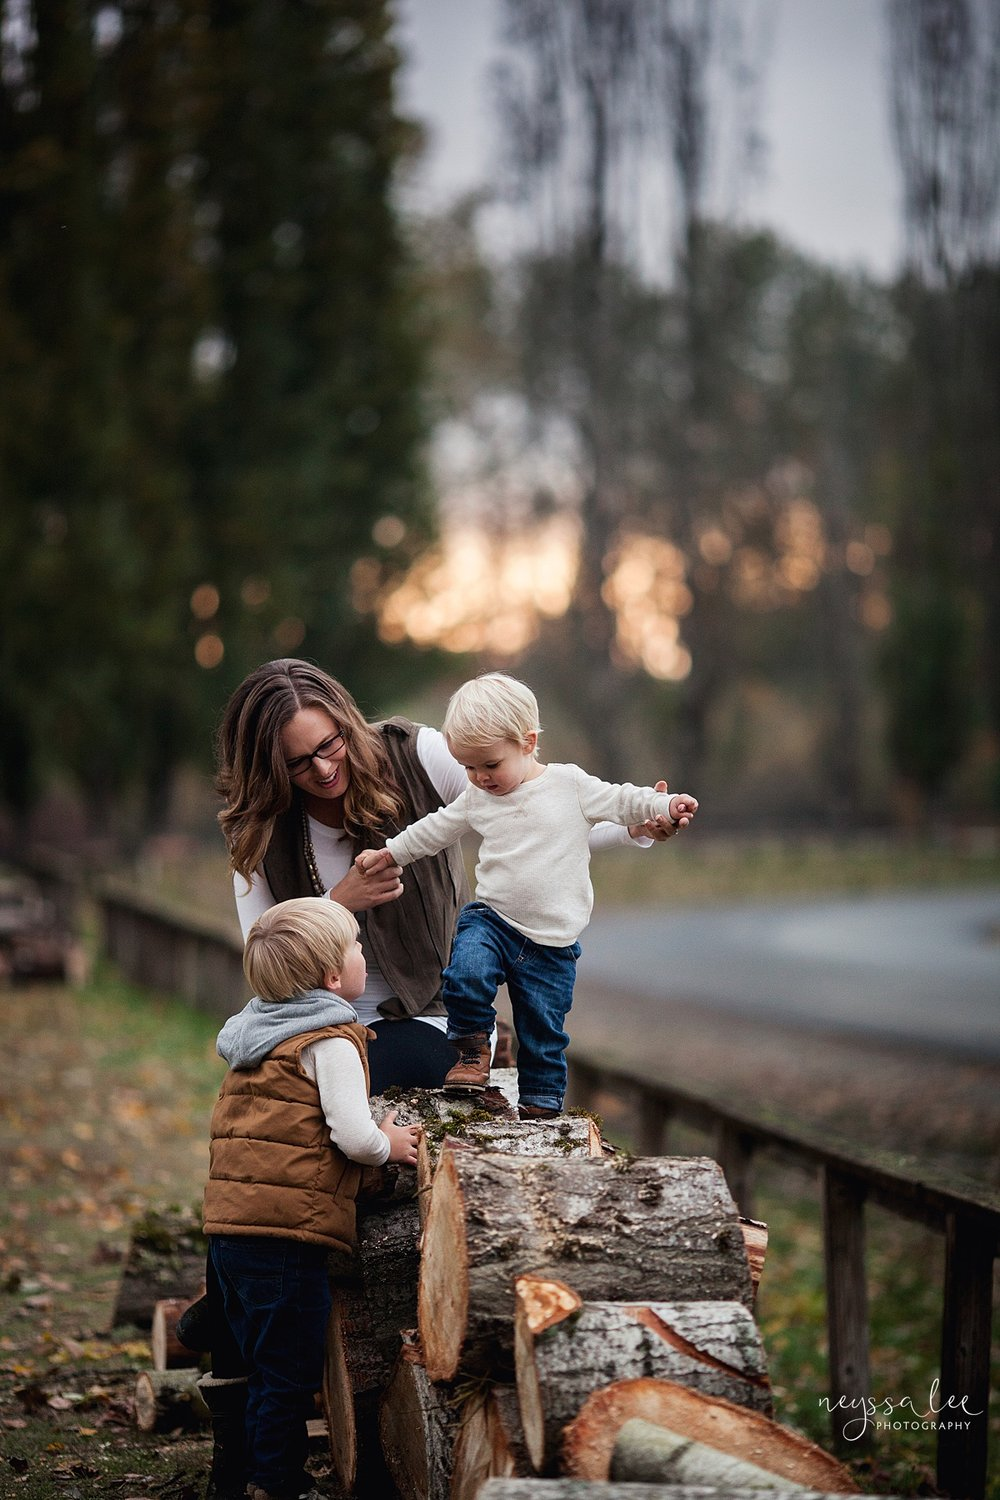 Neyssa Lee Photography, Snoqualmie Family Photographer, Fall Family Photos, Lifestyle Mother and Sons photo